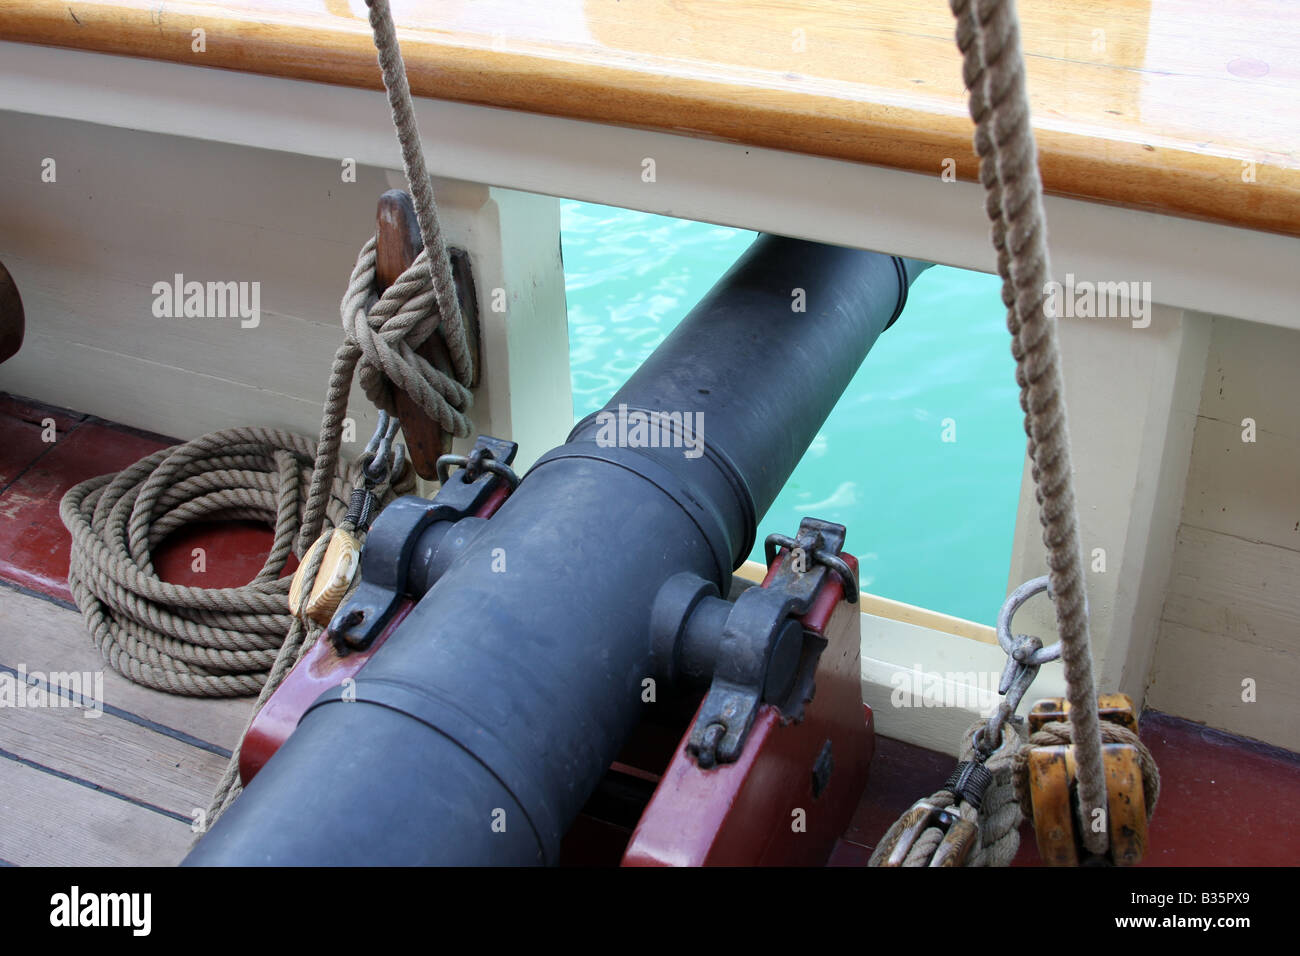 A cannon on the deck of the Pride of Baltimore ship at the Maritime Festiville in Port Washington Wisconsin - Stock Image